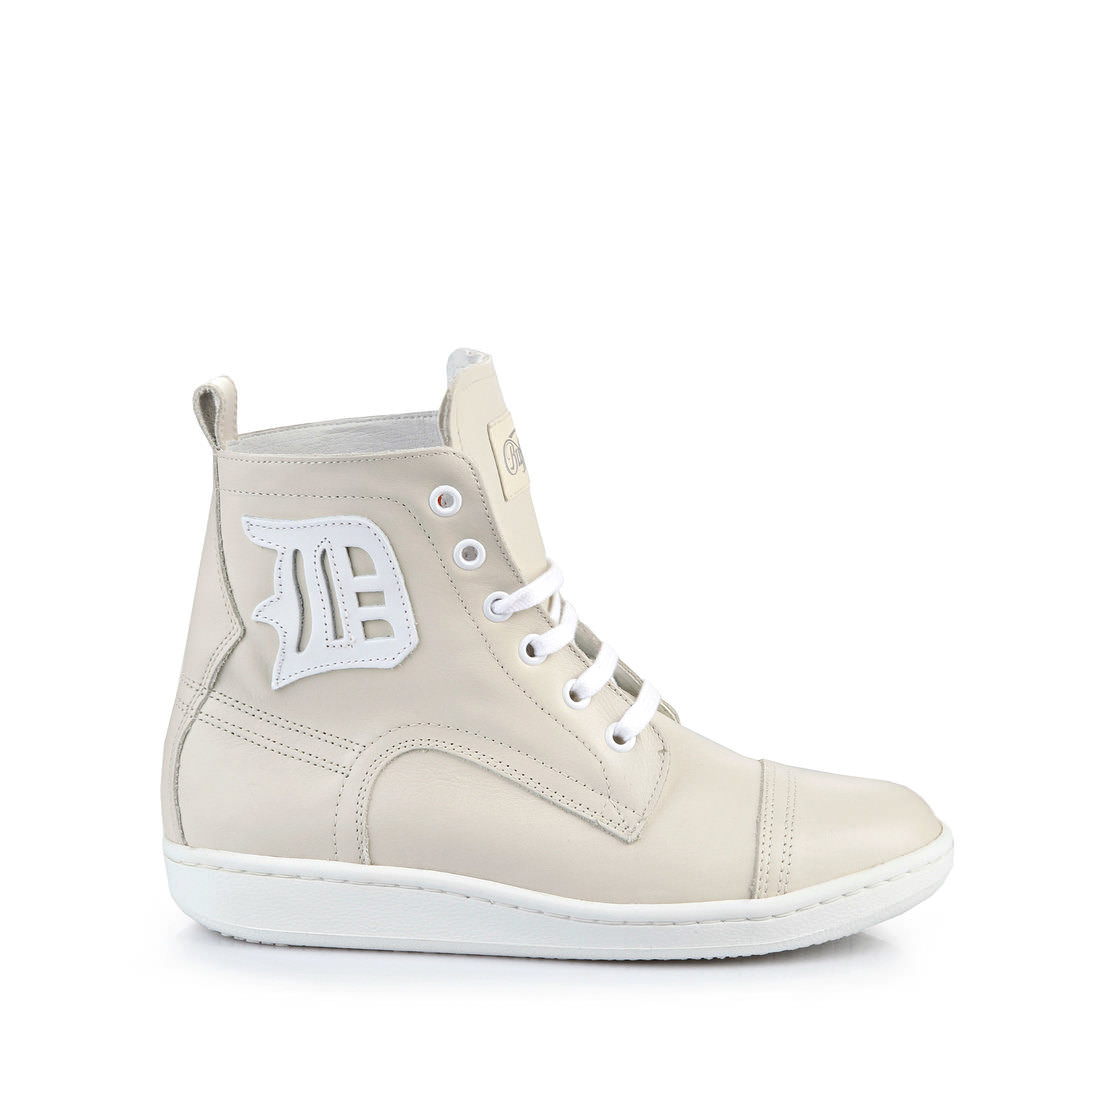 new arrival 08cb1 58d41 Buffalo high-top sneaker leather beige buy online in BUFFALO ...